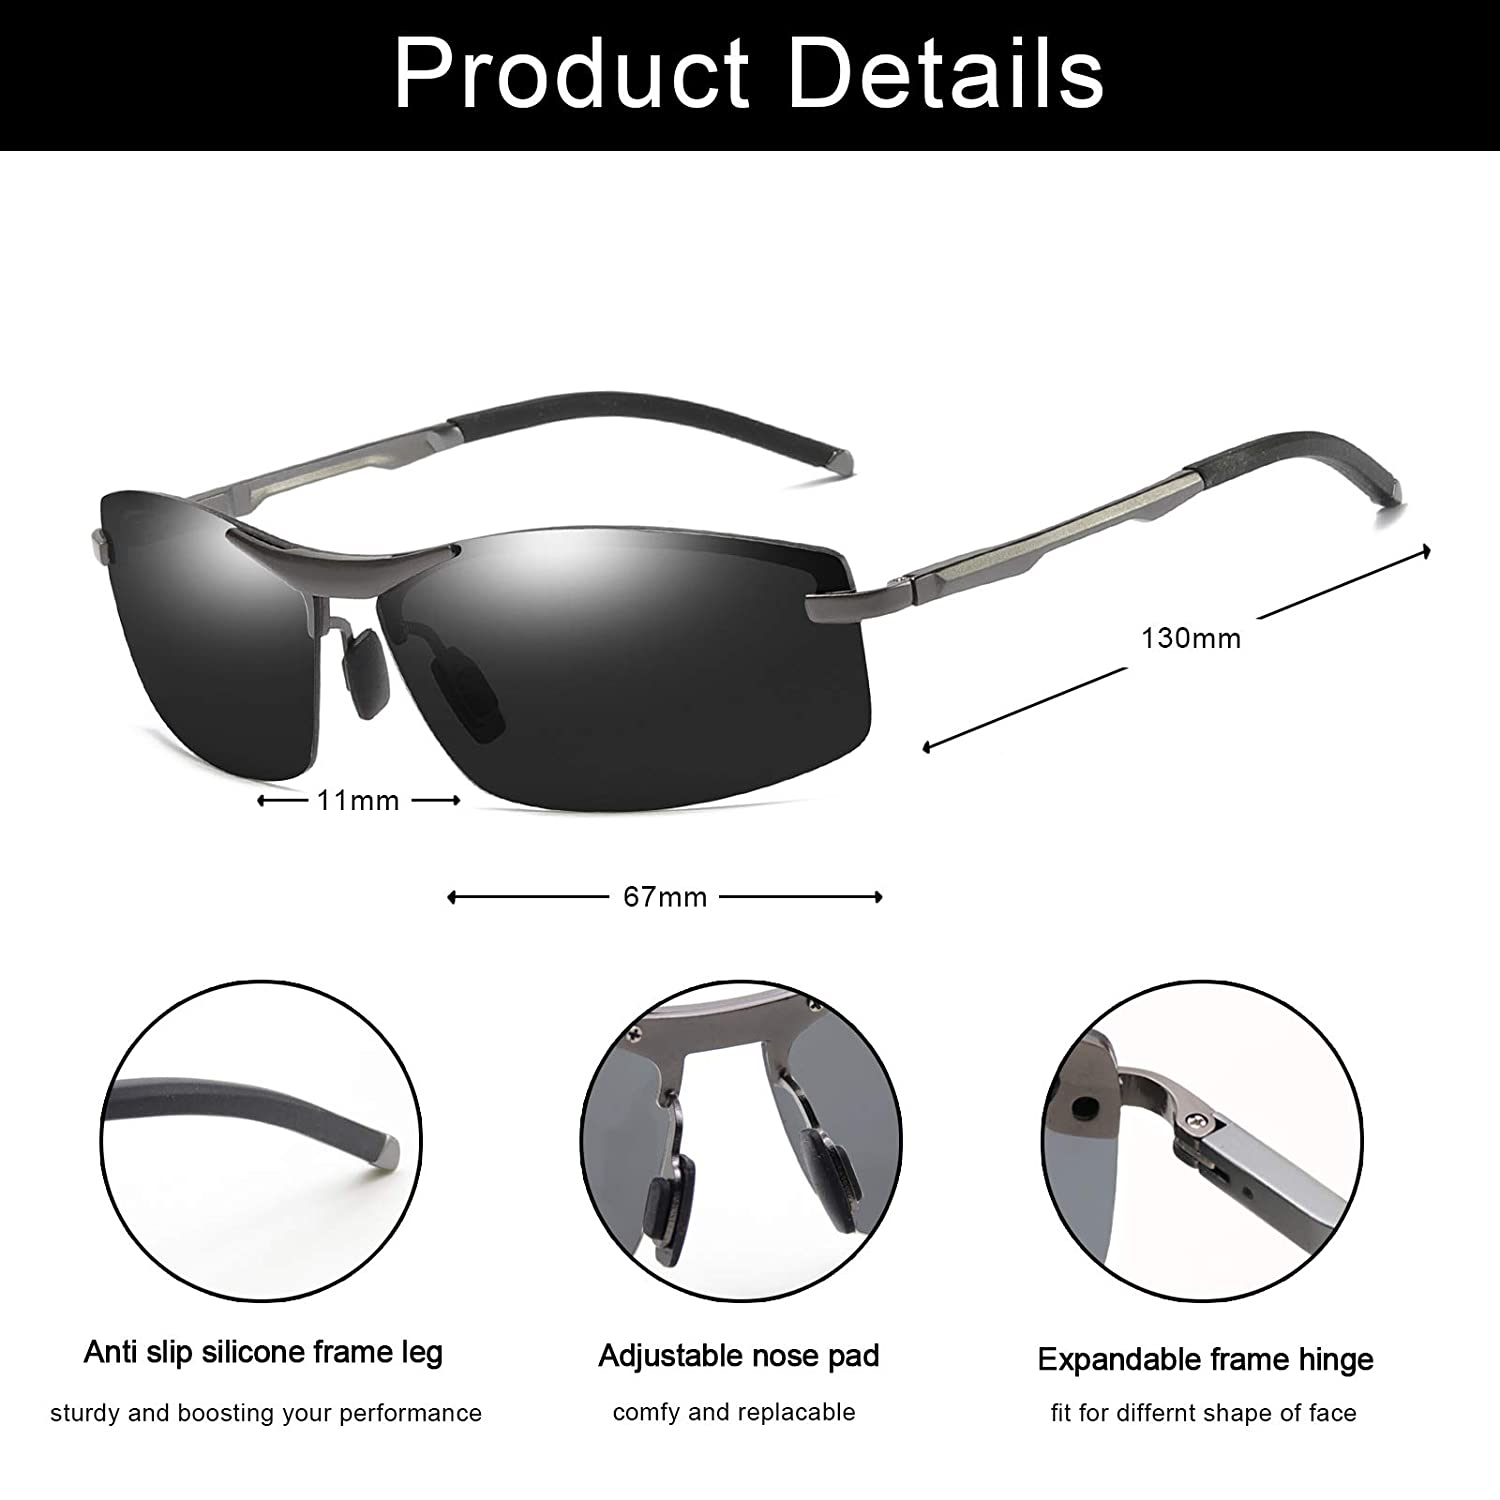 WHCREAT Mens Driving Polarized Sunglasses Ultra Light Al-Mg Metal Frame with Spring Hinges